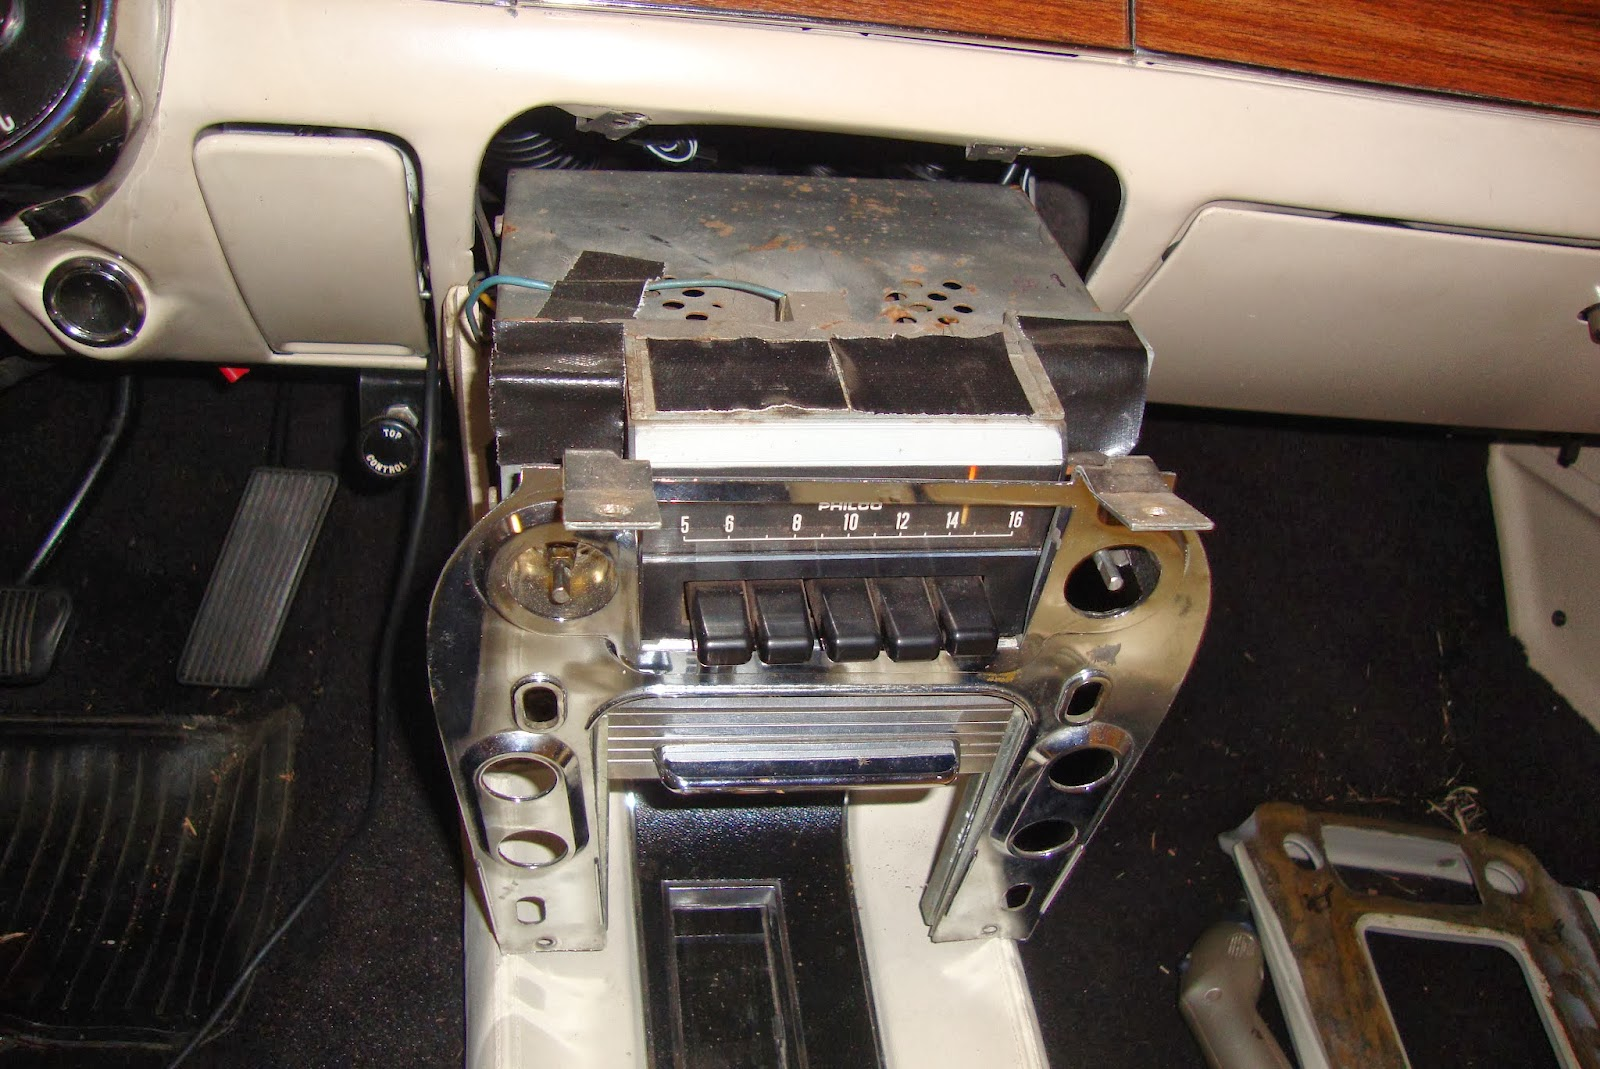 1968 Mustang Center Console Wiring Diagram Best Secret Cougar Diagrams 1967 Mercury Harness 1955 Thunderbird Turn Signal